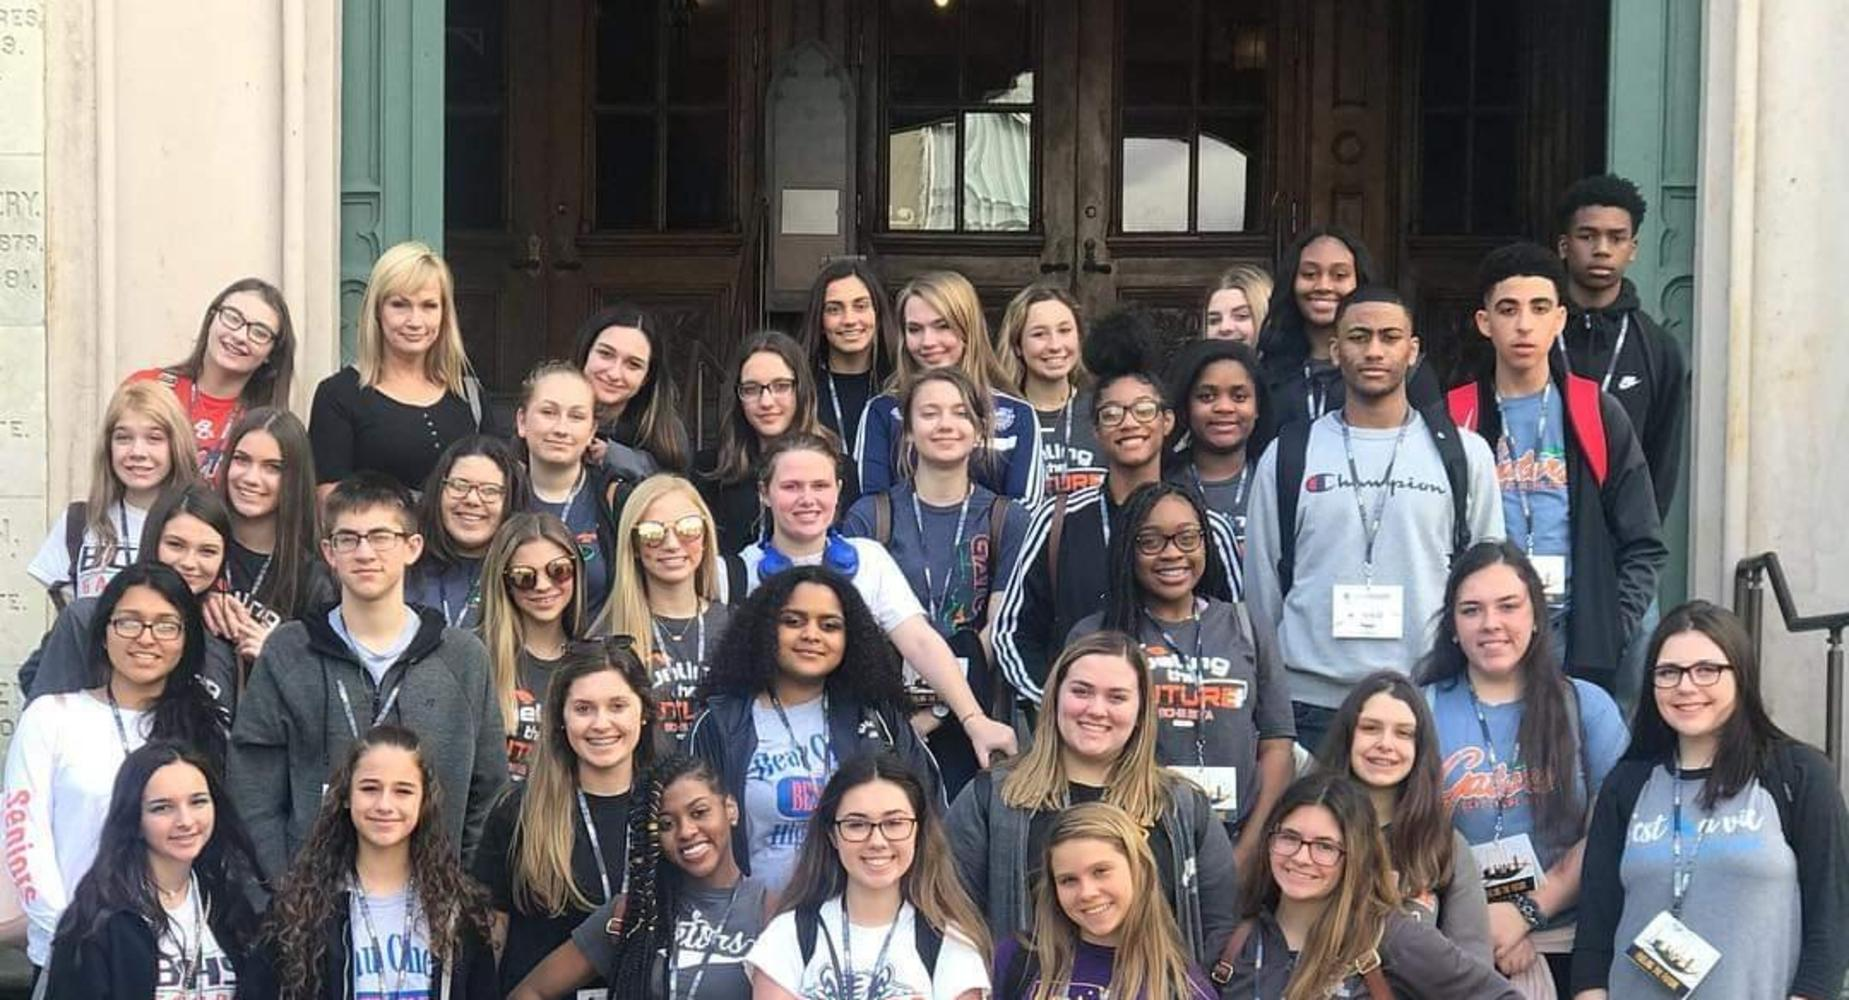 BCHS BETA Club attended the Louisiana State Convention in Baton Rouge, Louisiana